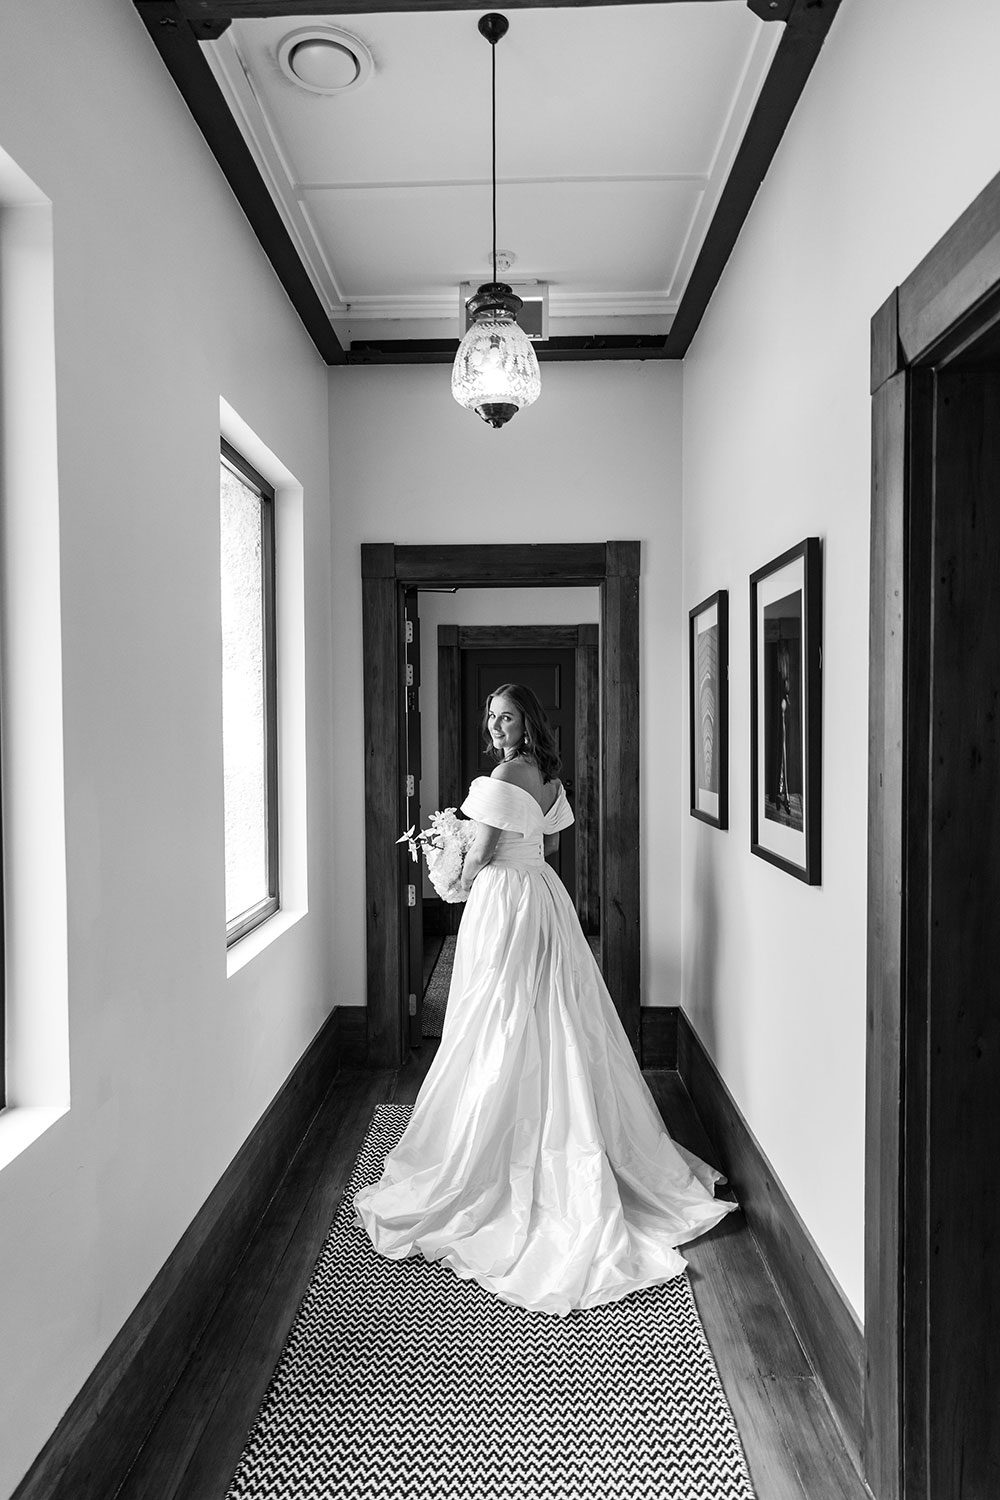 Bride wearing bespoke off shoulder bodice made with silk dupion and long train design by NZ wedding dress maker Vinka Designs - black and white back view in doorway